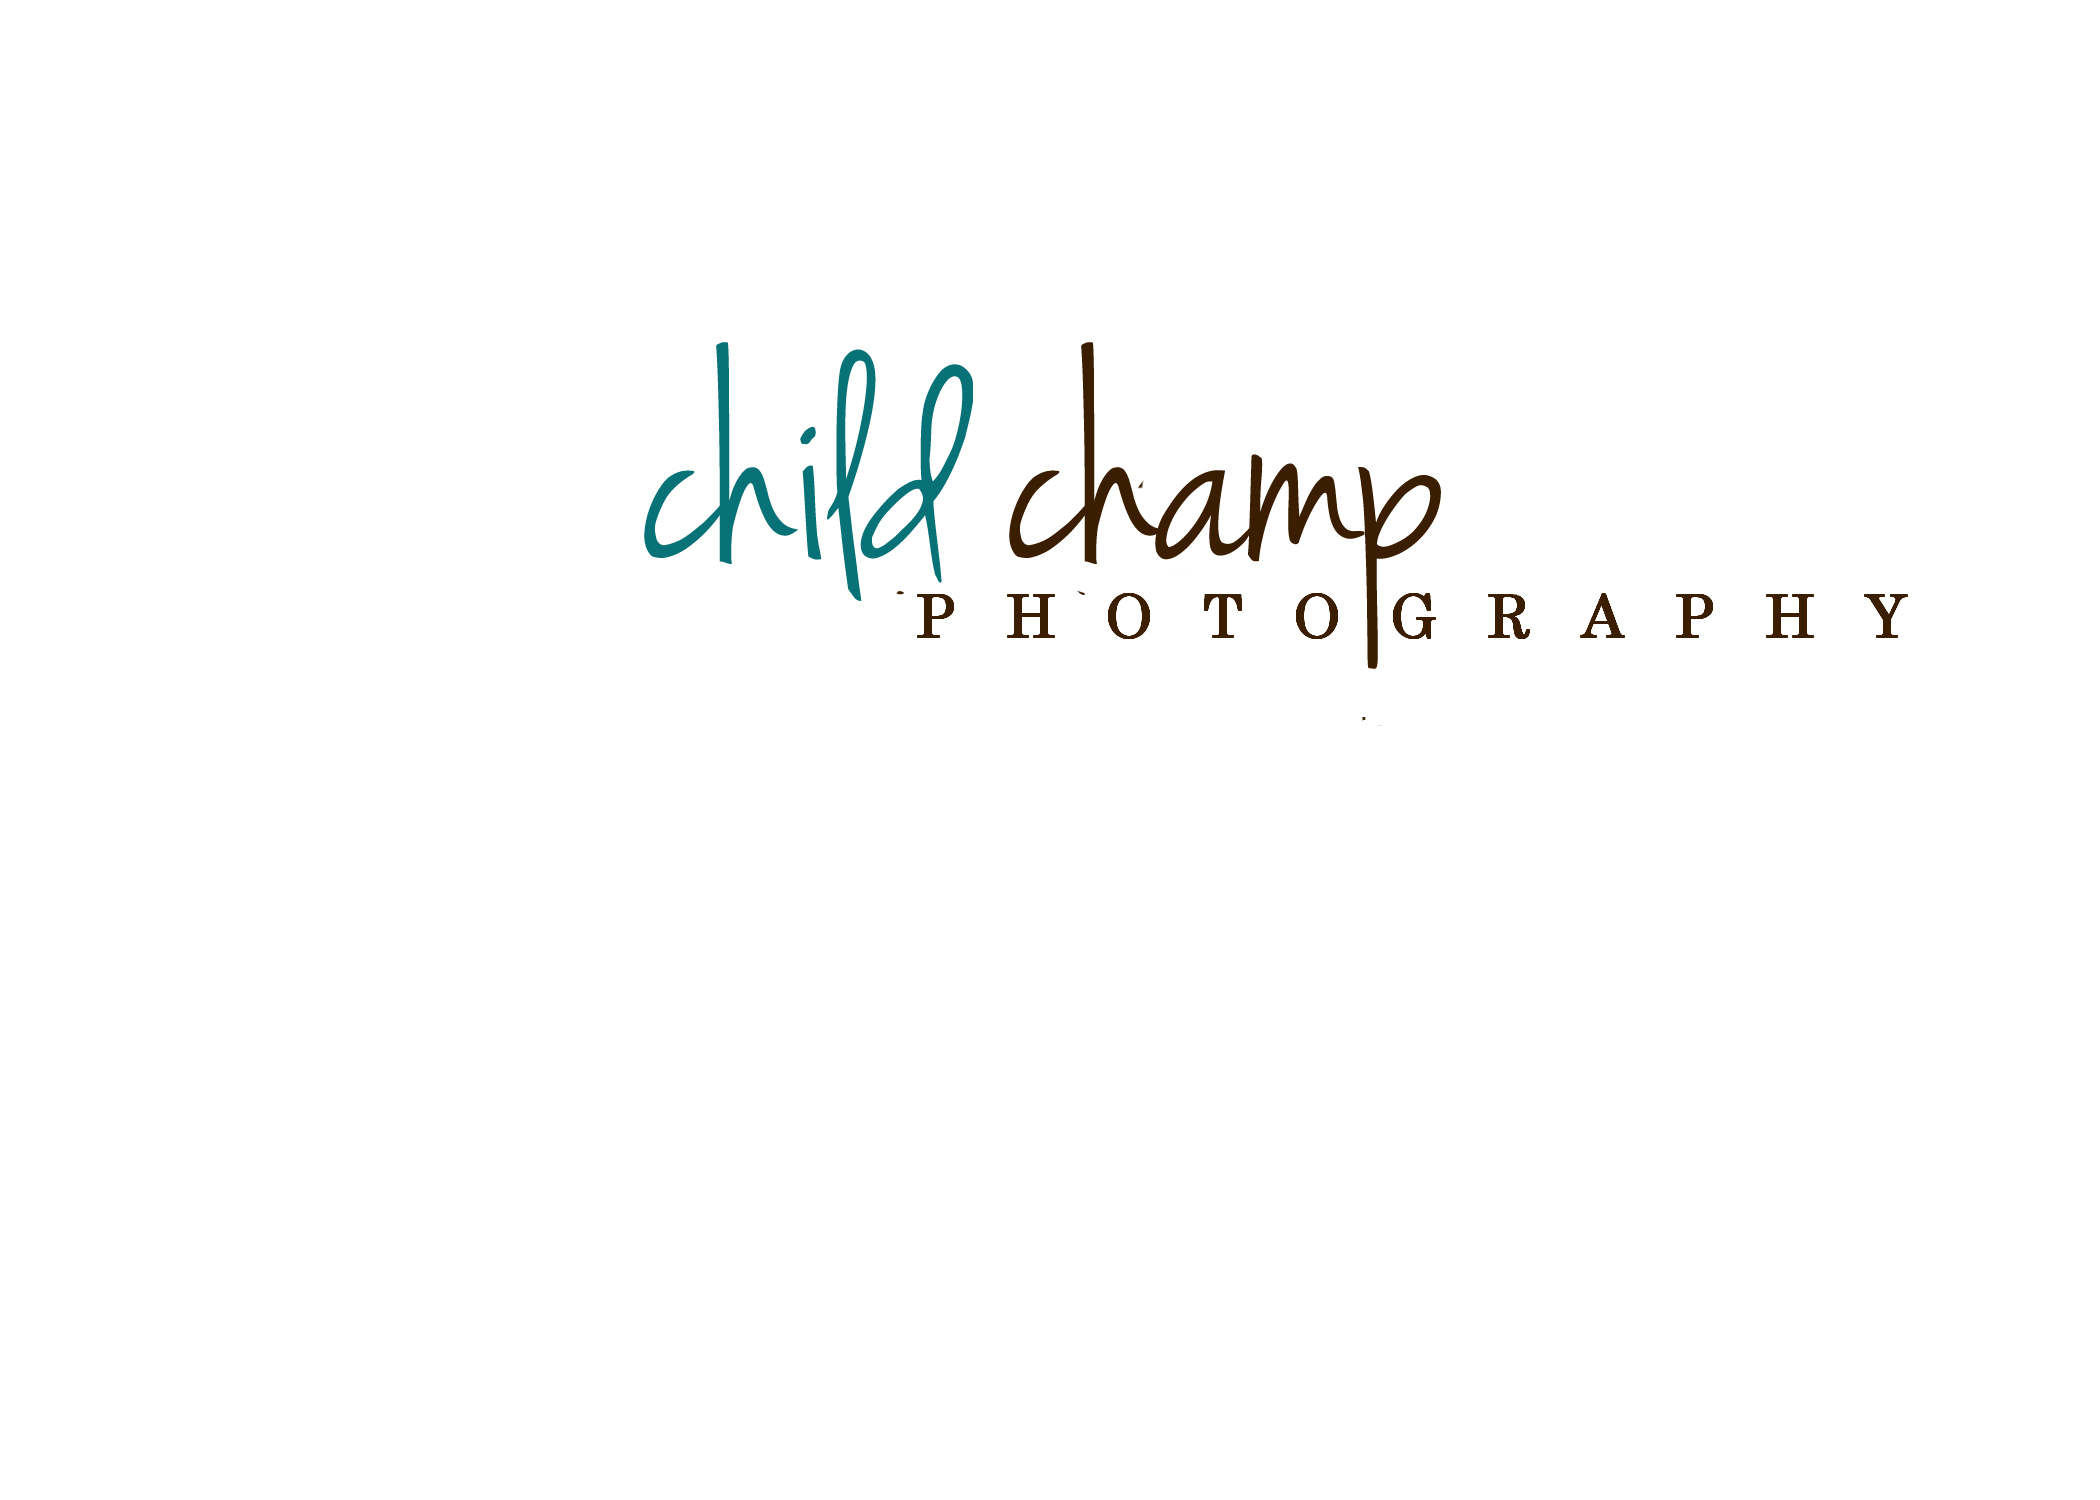 Child Champ Photography